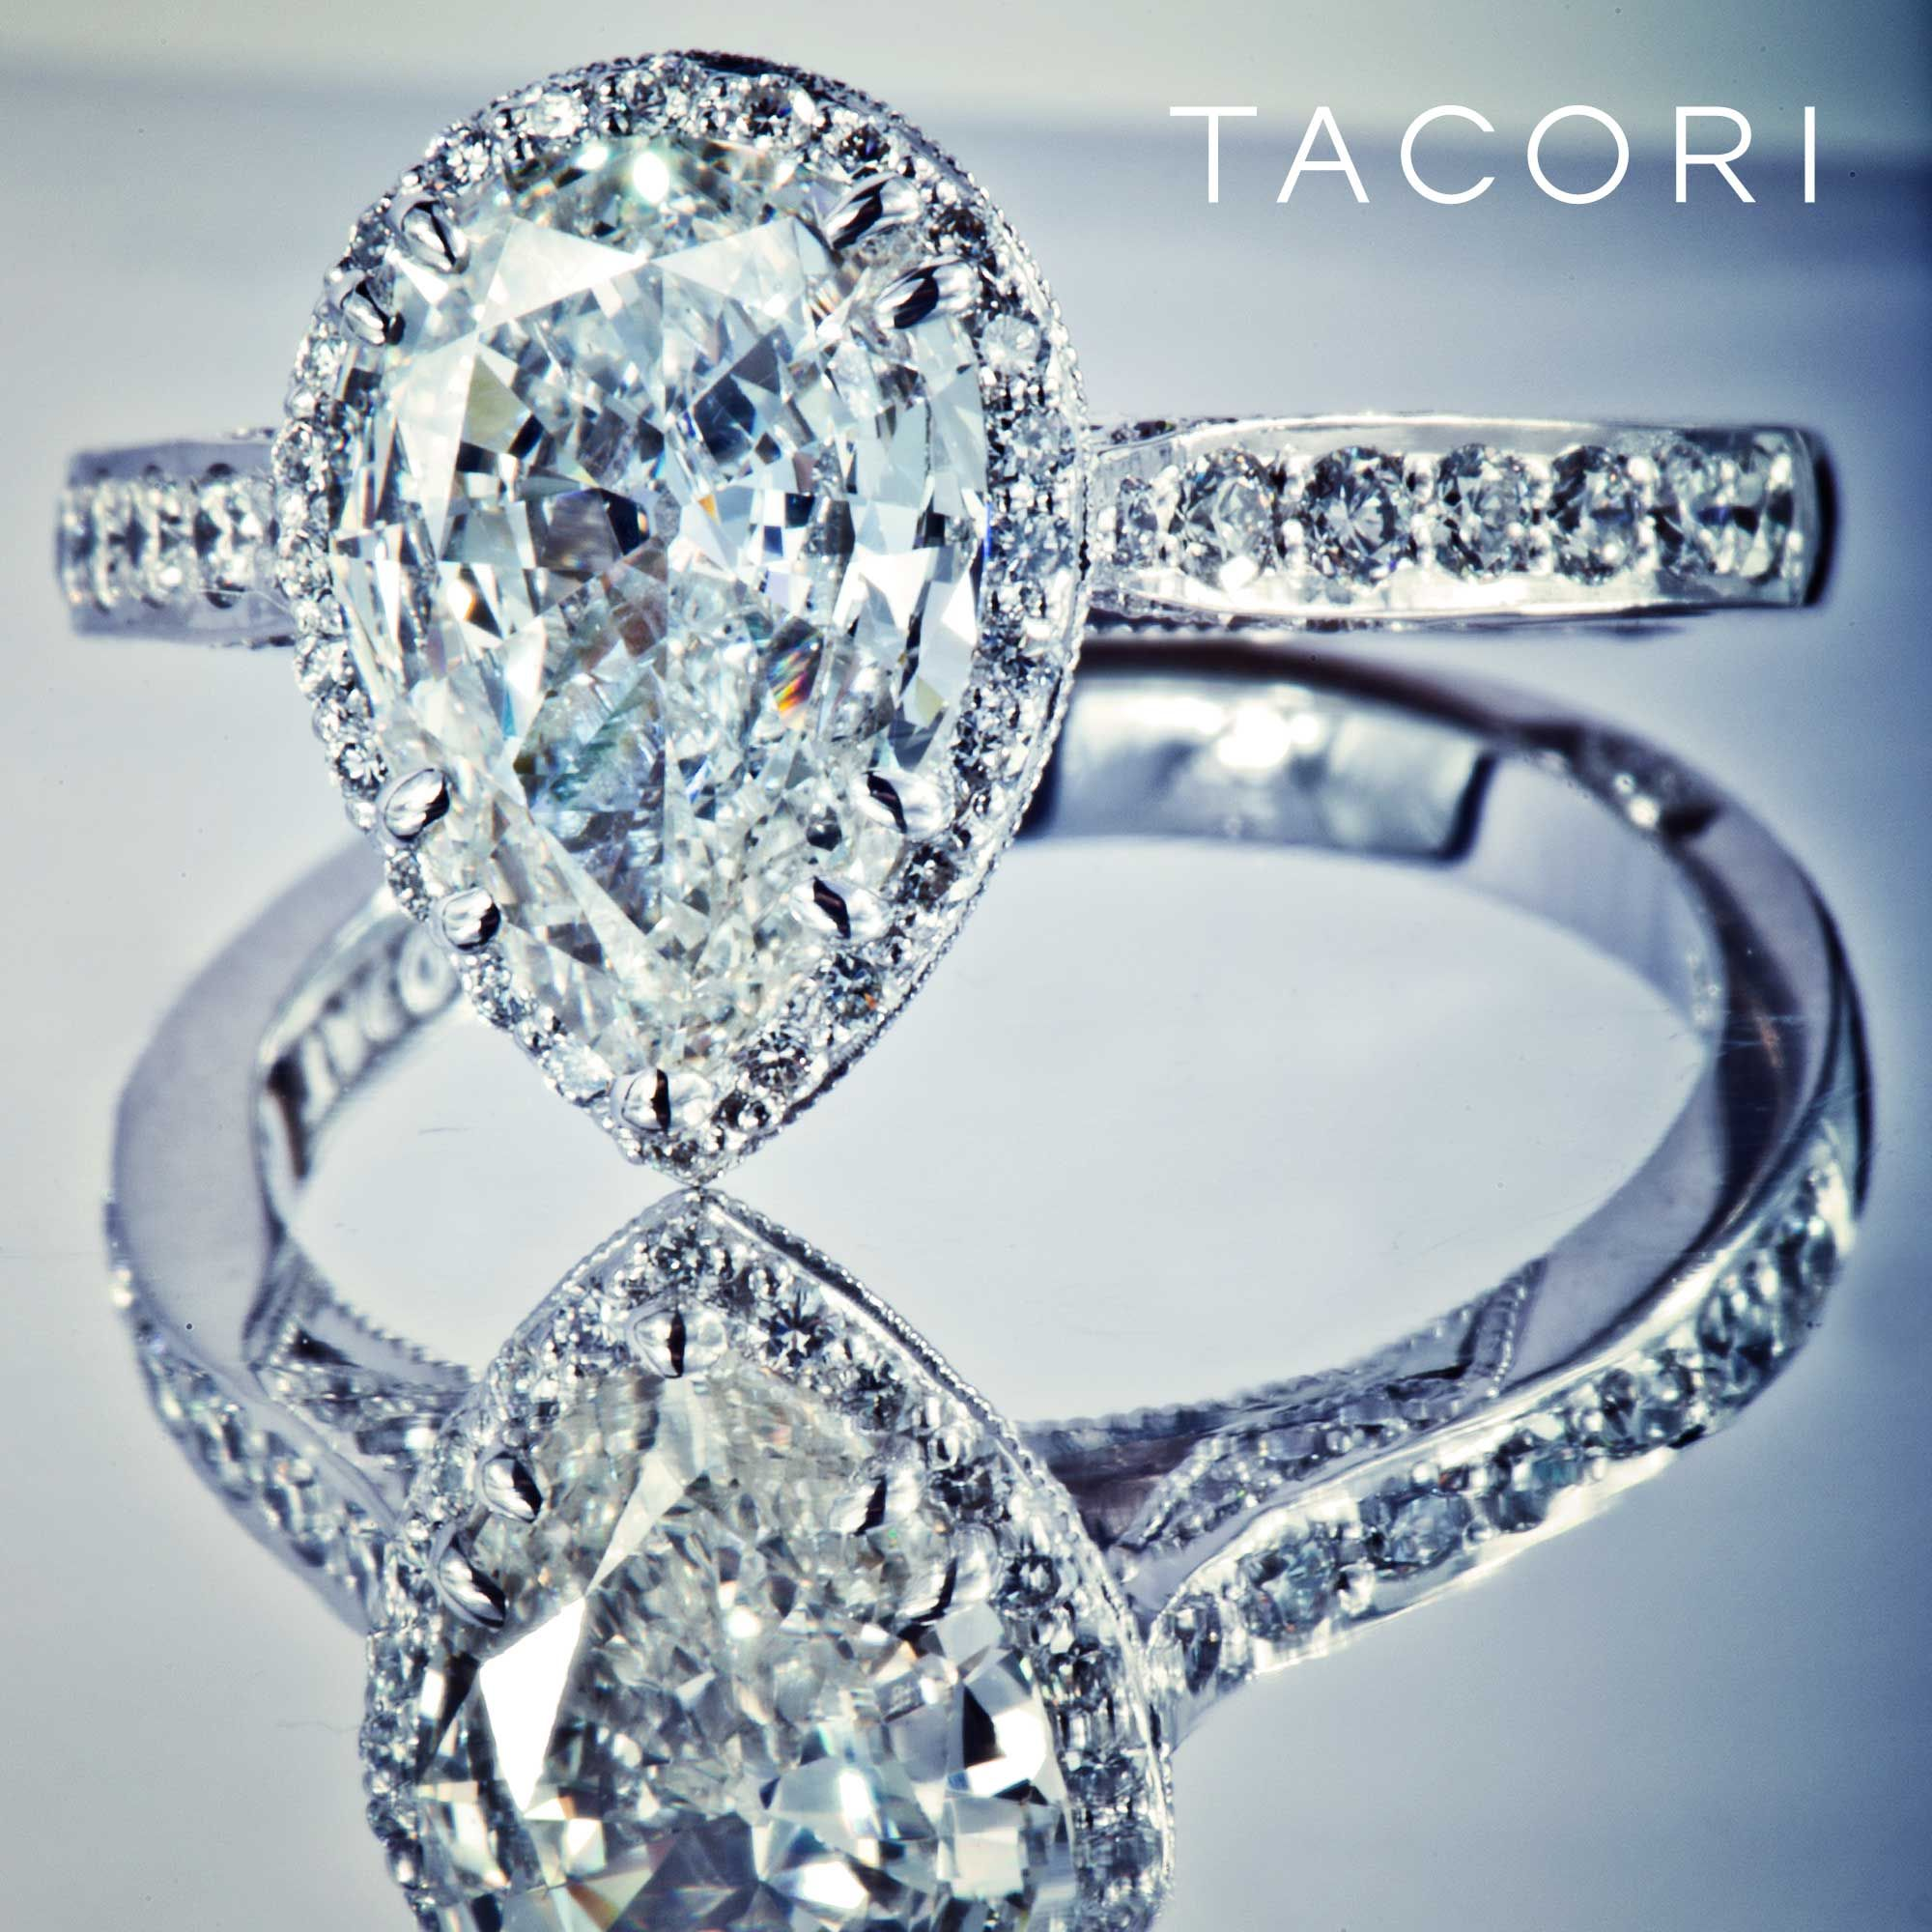 tacori wedding ring Perhaps the most beautiful pear shaped diamond engagement ring ever Tacori engagement rings at DK Gems tacori store in st maarten